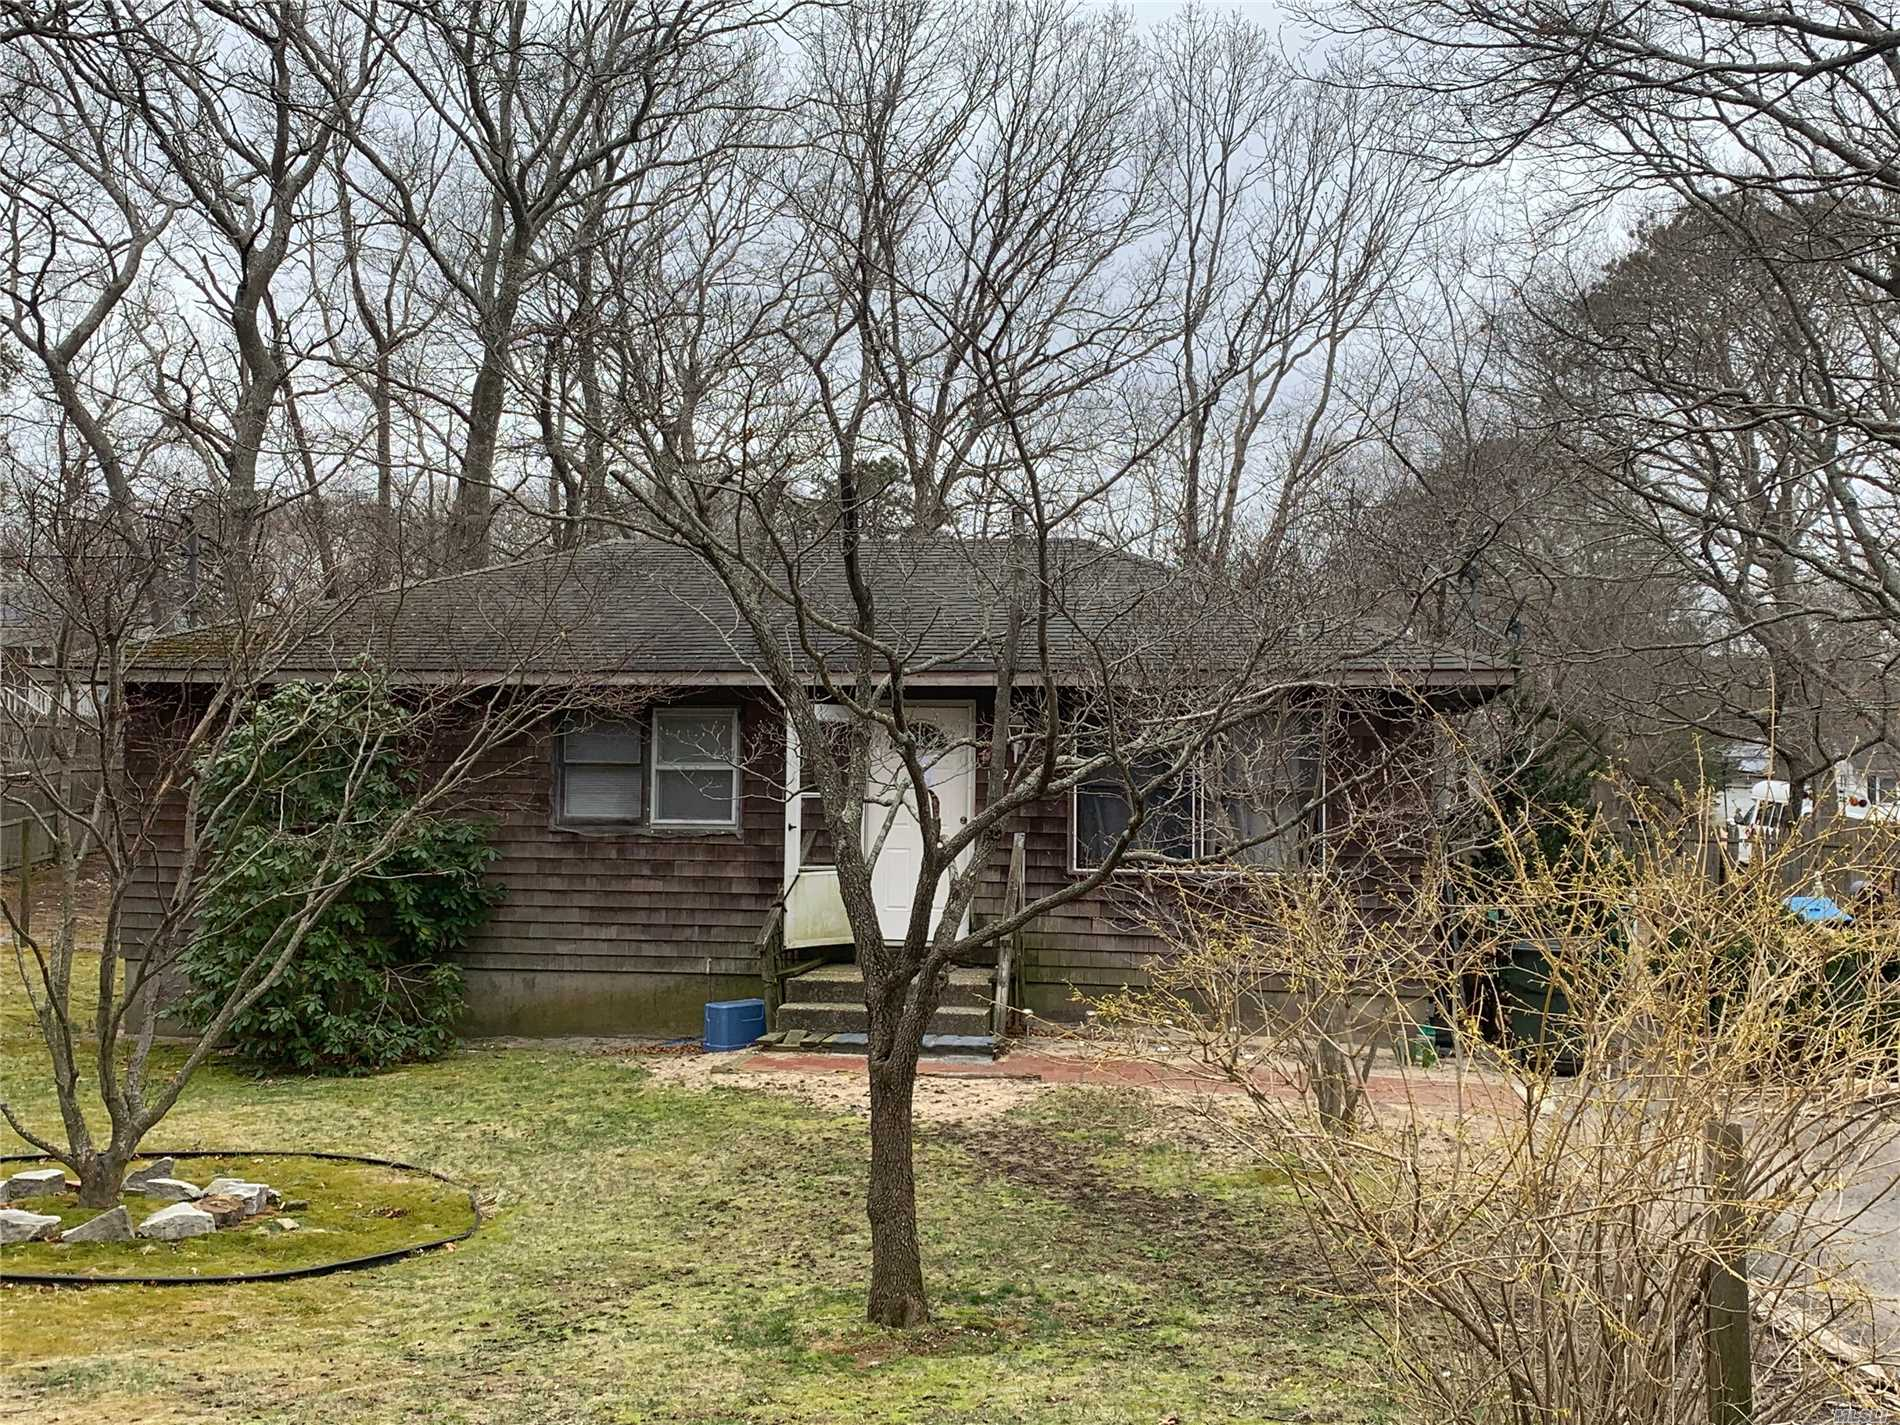 Wideline Ranch with 3 bedrooms, Large Livingroon, Eat in Kitchen, Hall Bath. full basement, wood deck.Property located on level lot close to transportation, shopping, town parks and beaches,